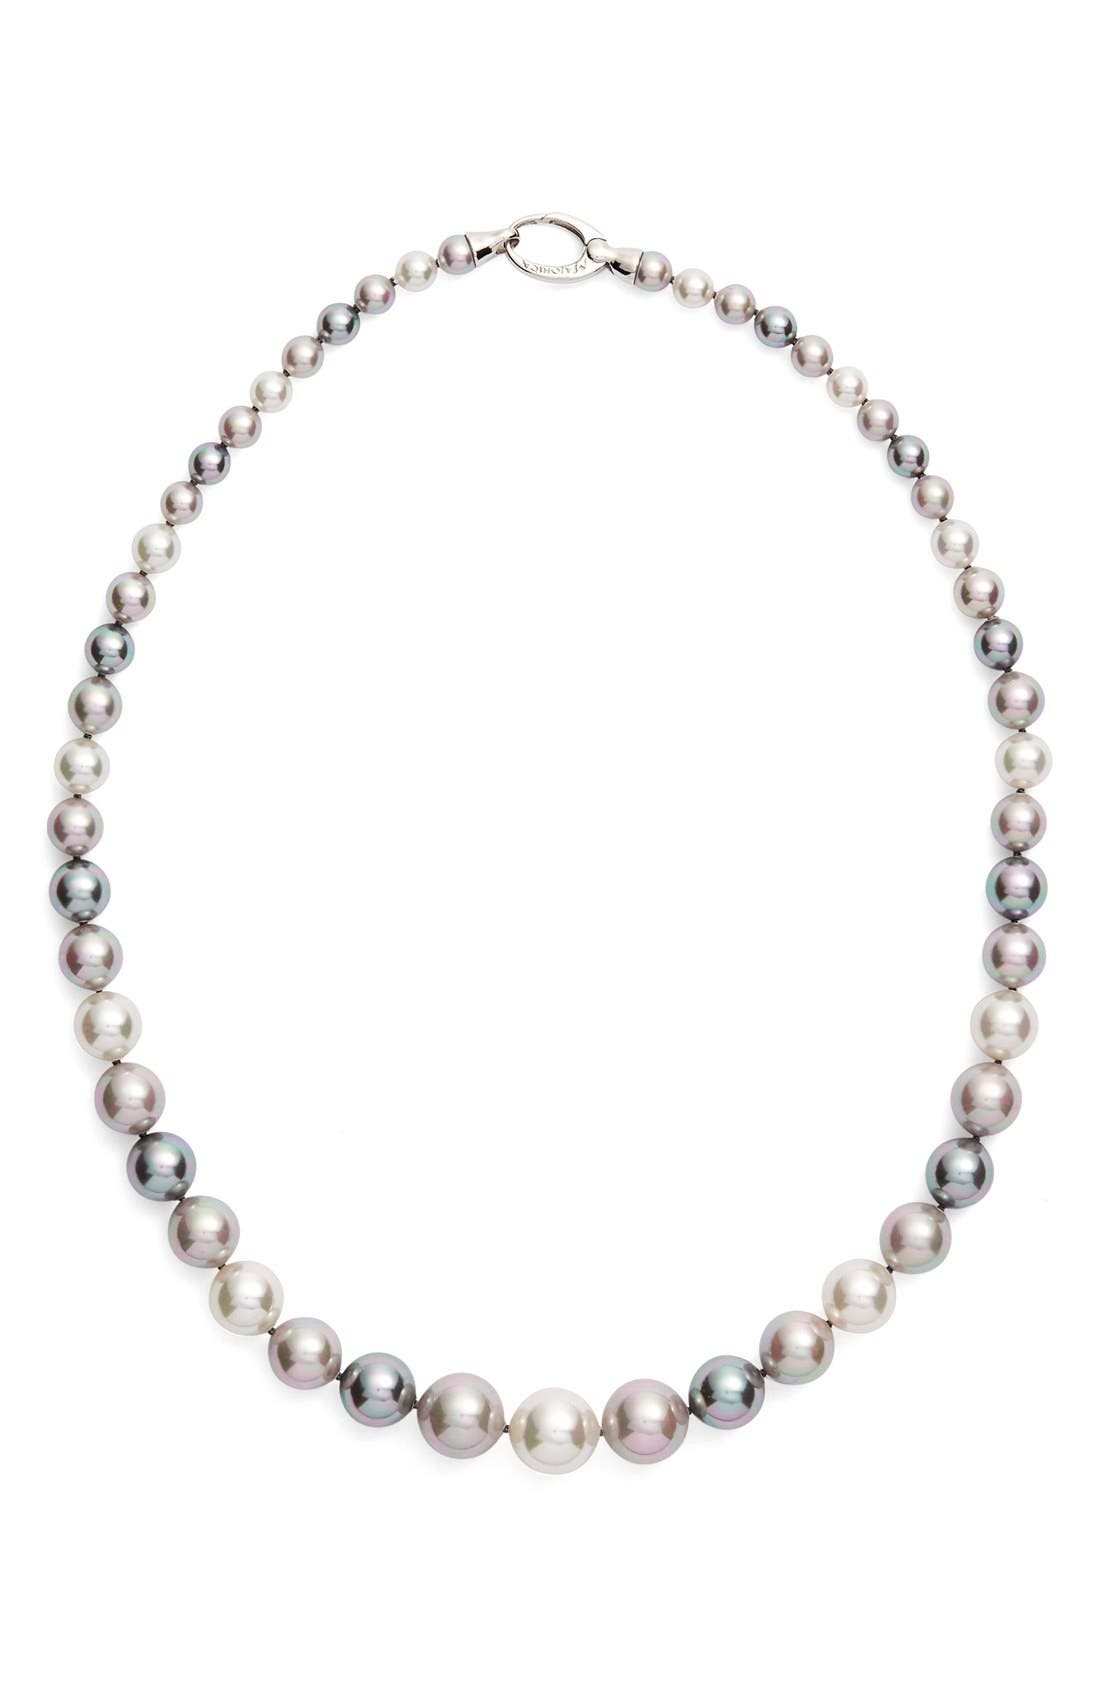 Graduated Round Simulated Pearl Necklace,                             Main thumbnail 1, color,                             020